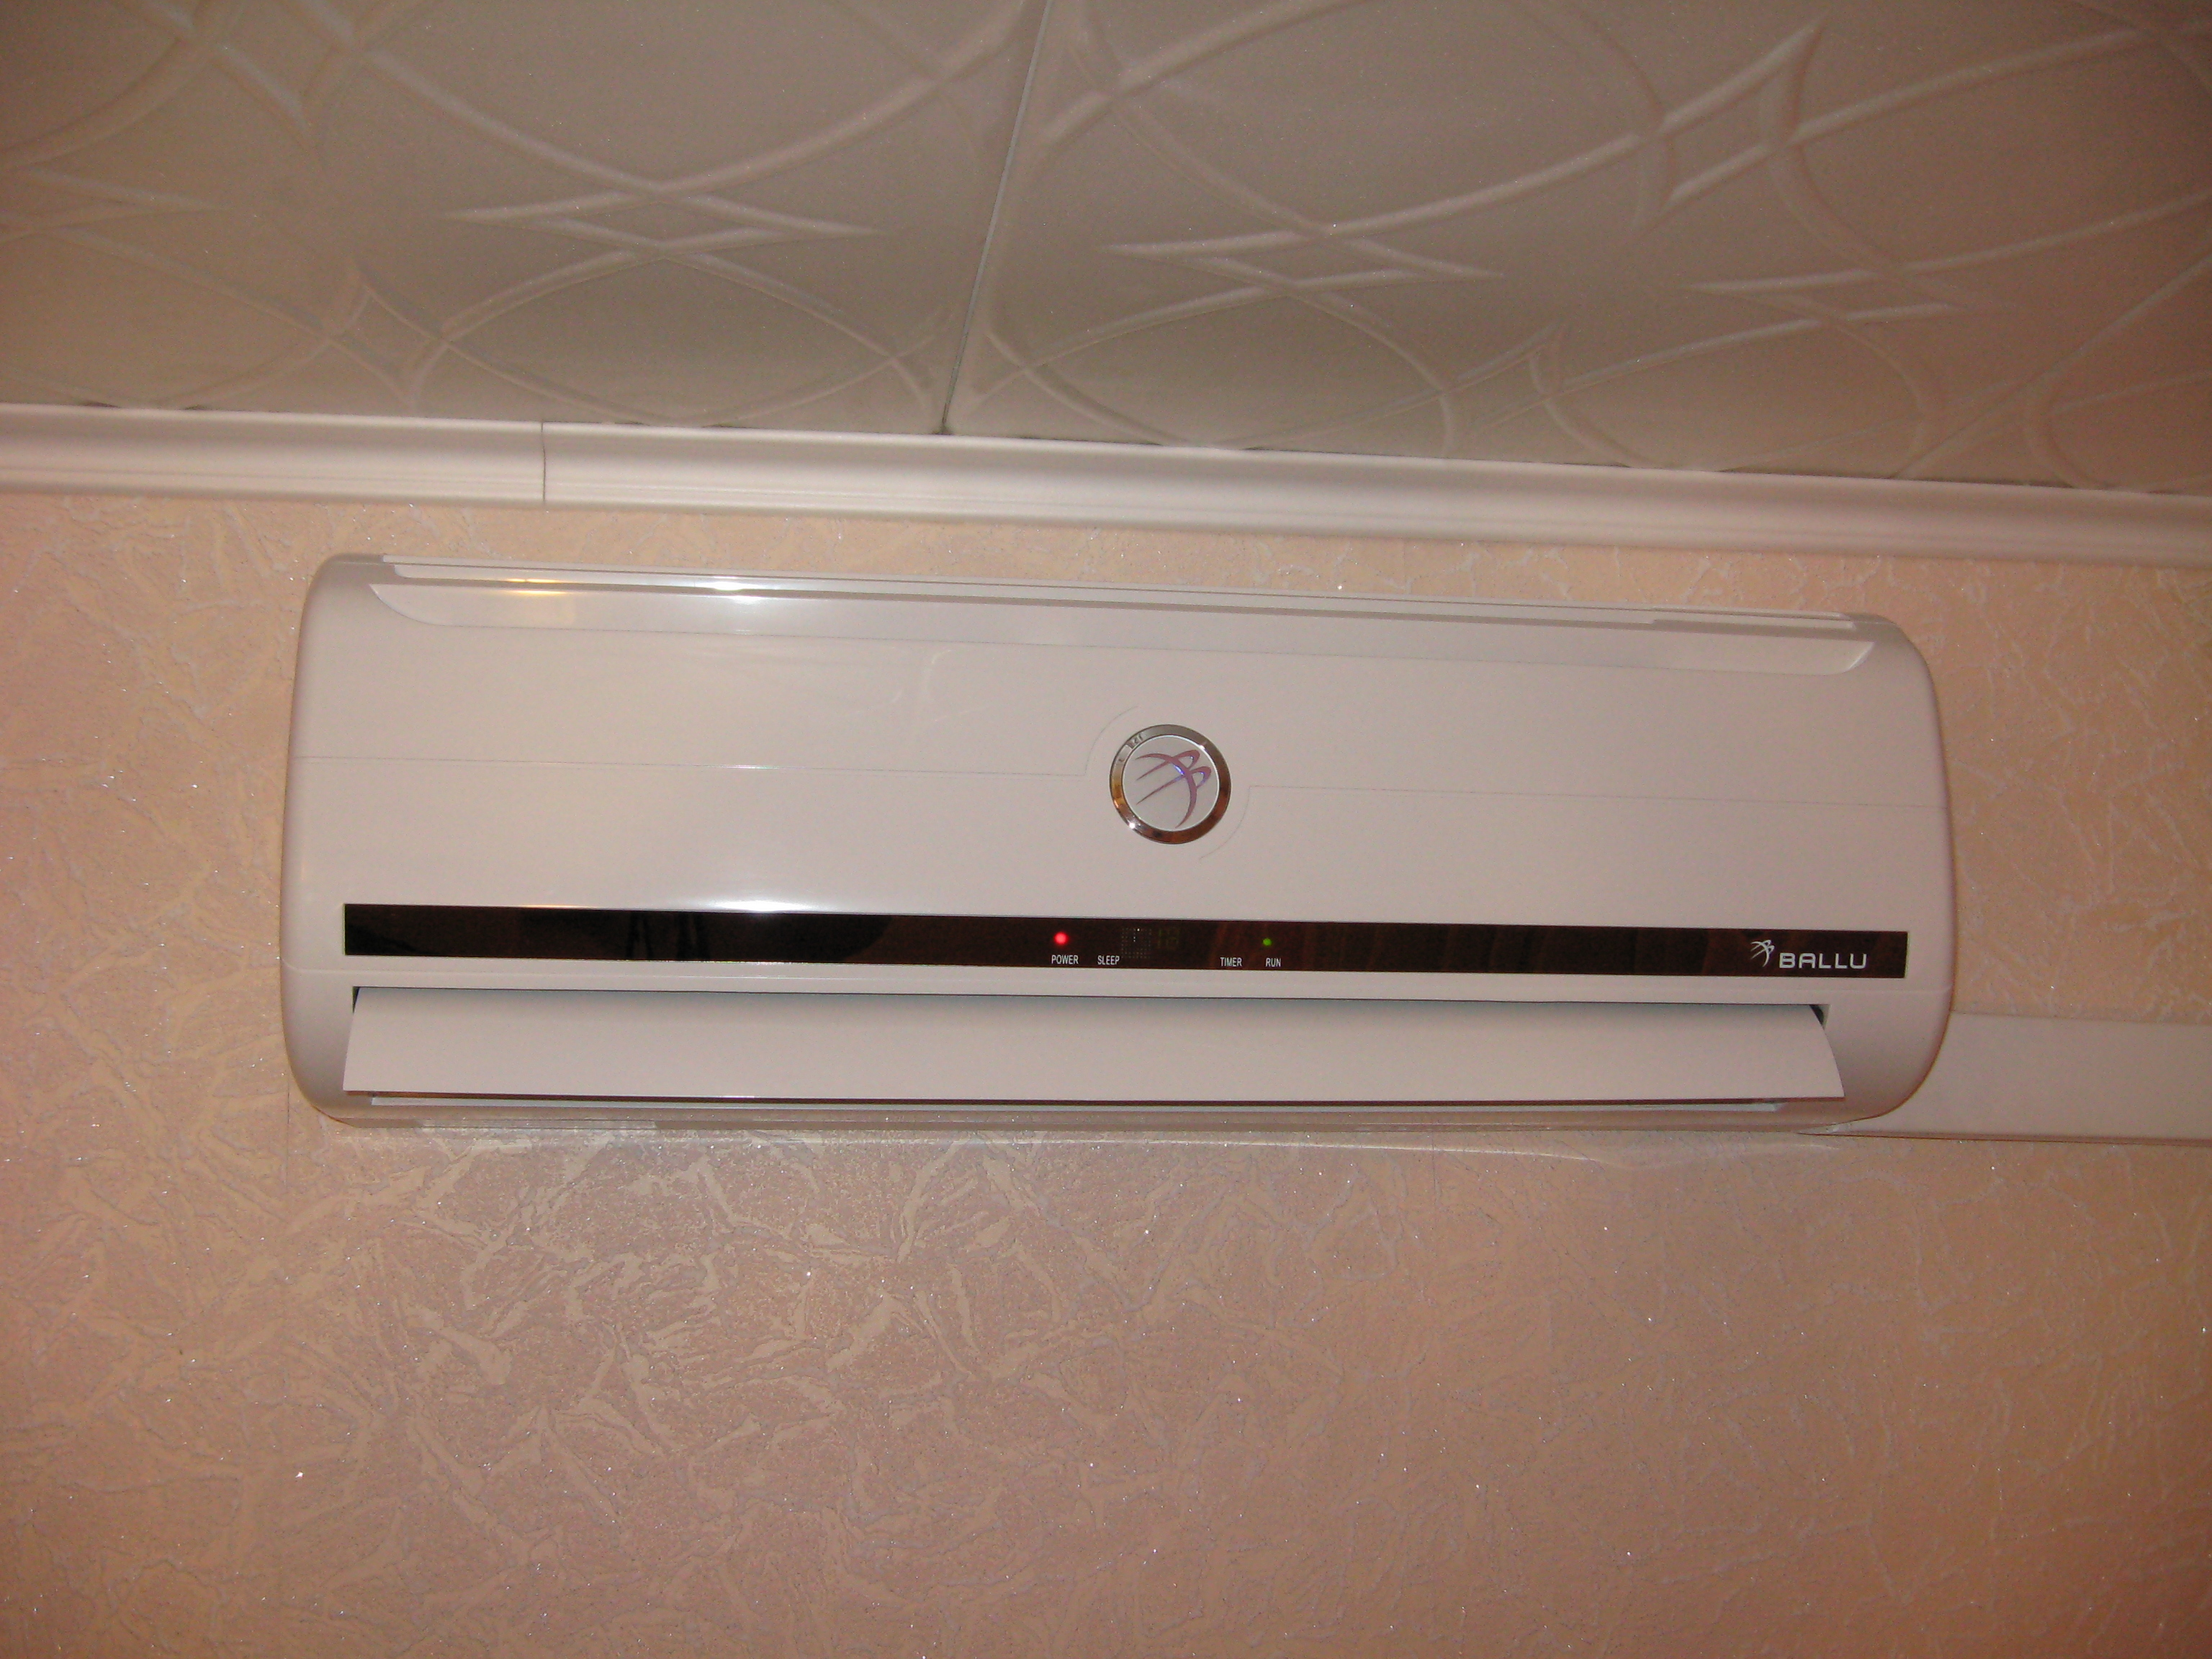 Air conditioners are very important appliances. Temperature controls enable us to alter the productivity of an air conditioner to our comfort level. There are